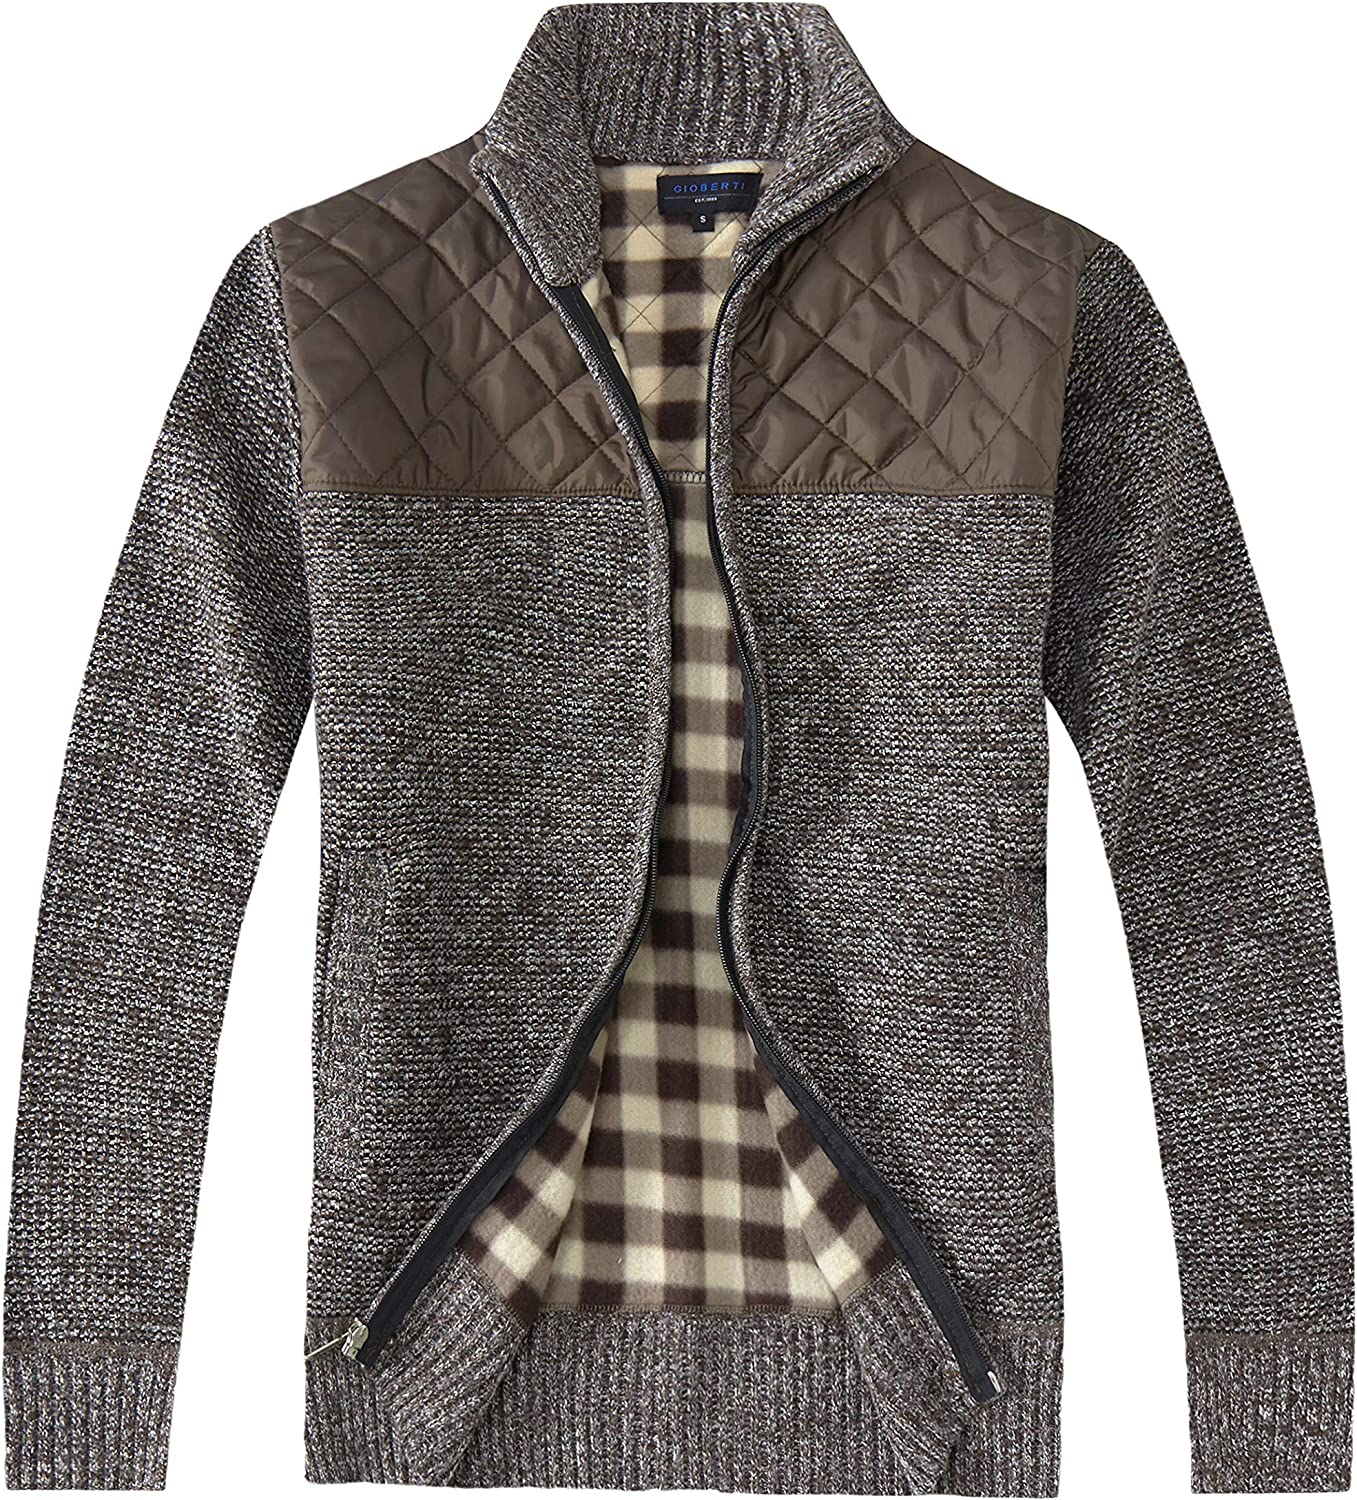 Limited time cheap sale San Antonio Mall Gioberti Men's Knitted Regular Fit wit Cardigan Zip Sweater Full